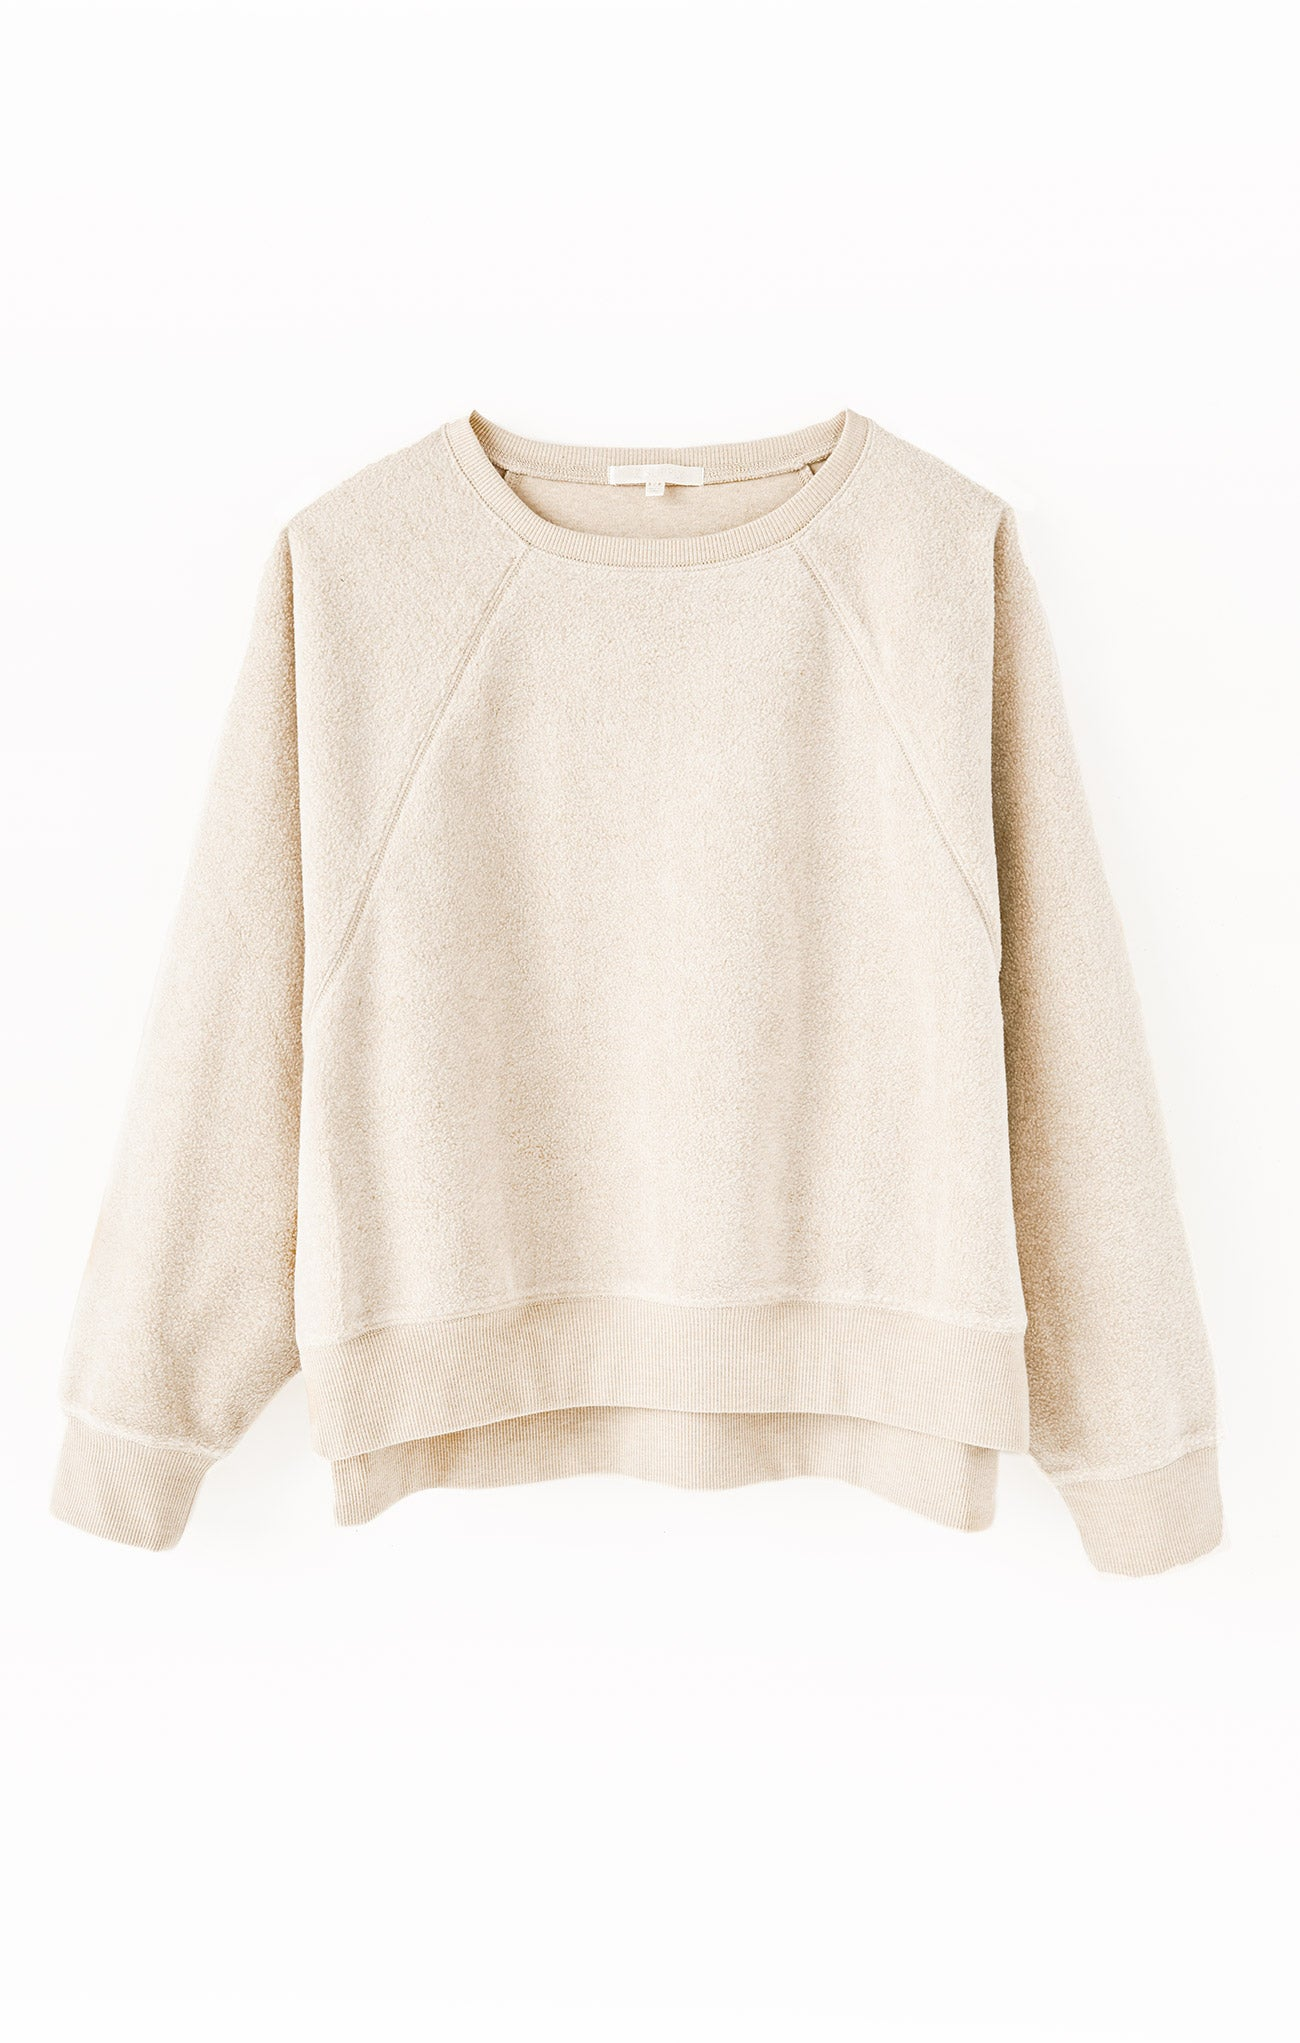 Tops Sleep Over Raglan Sweatshirt Birch